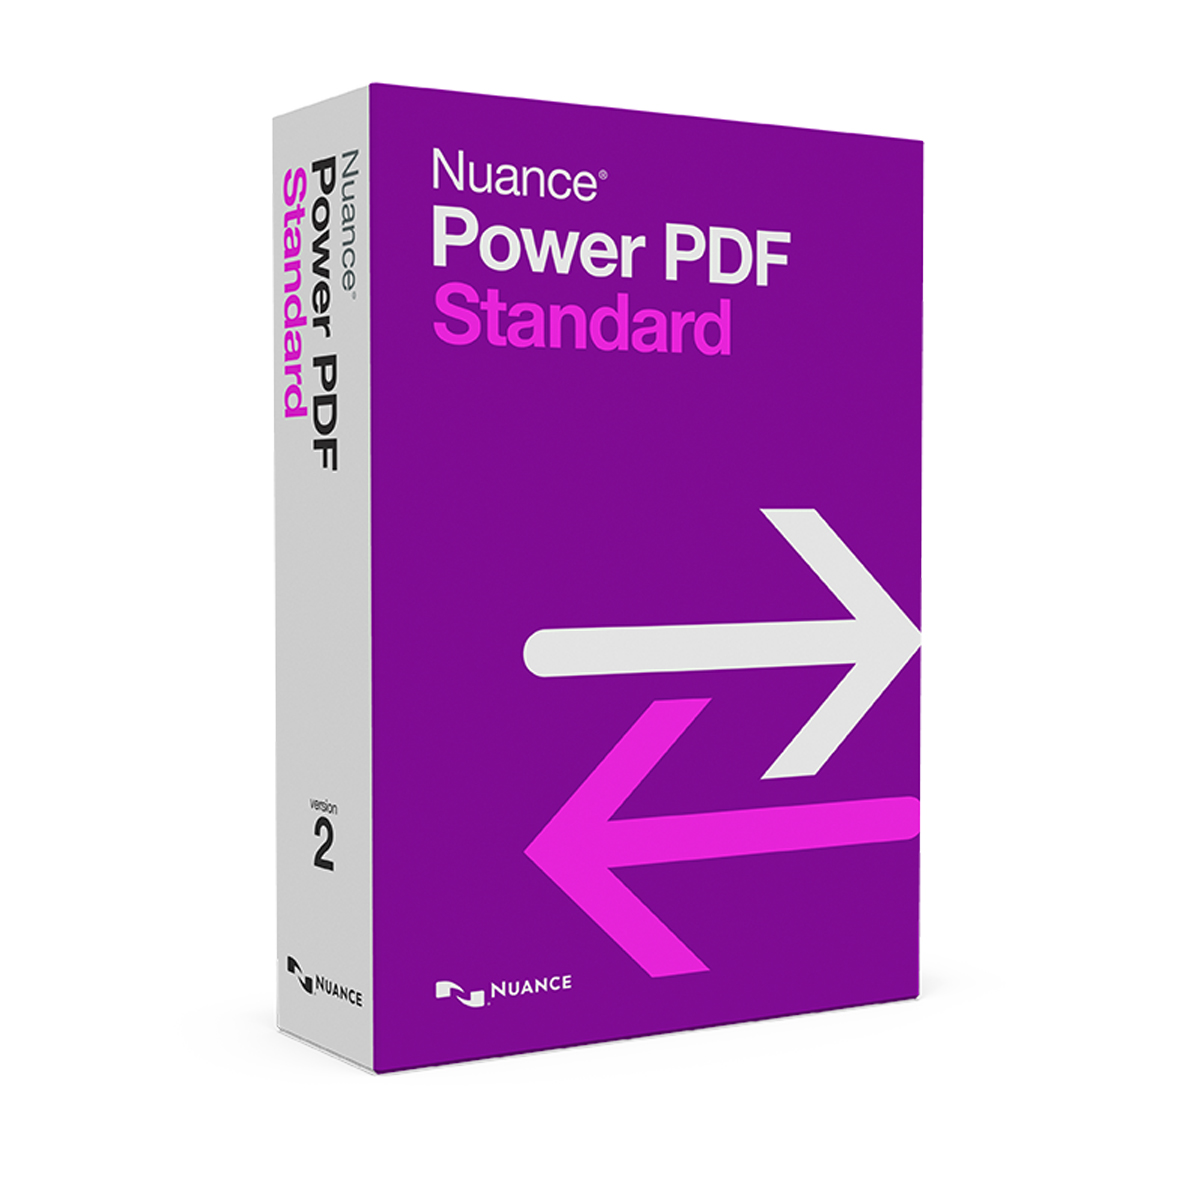 Nuance Power PDF Standard v2 International English Retail